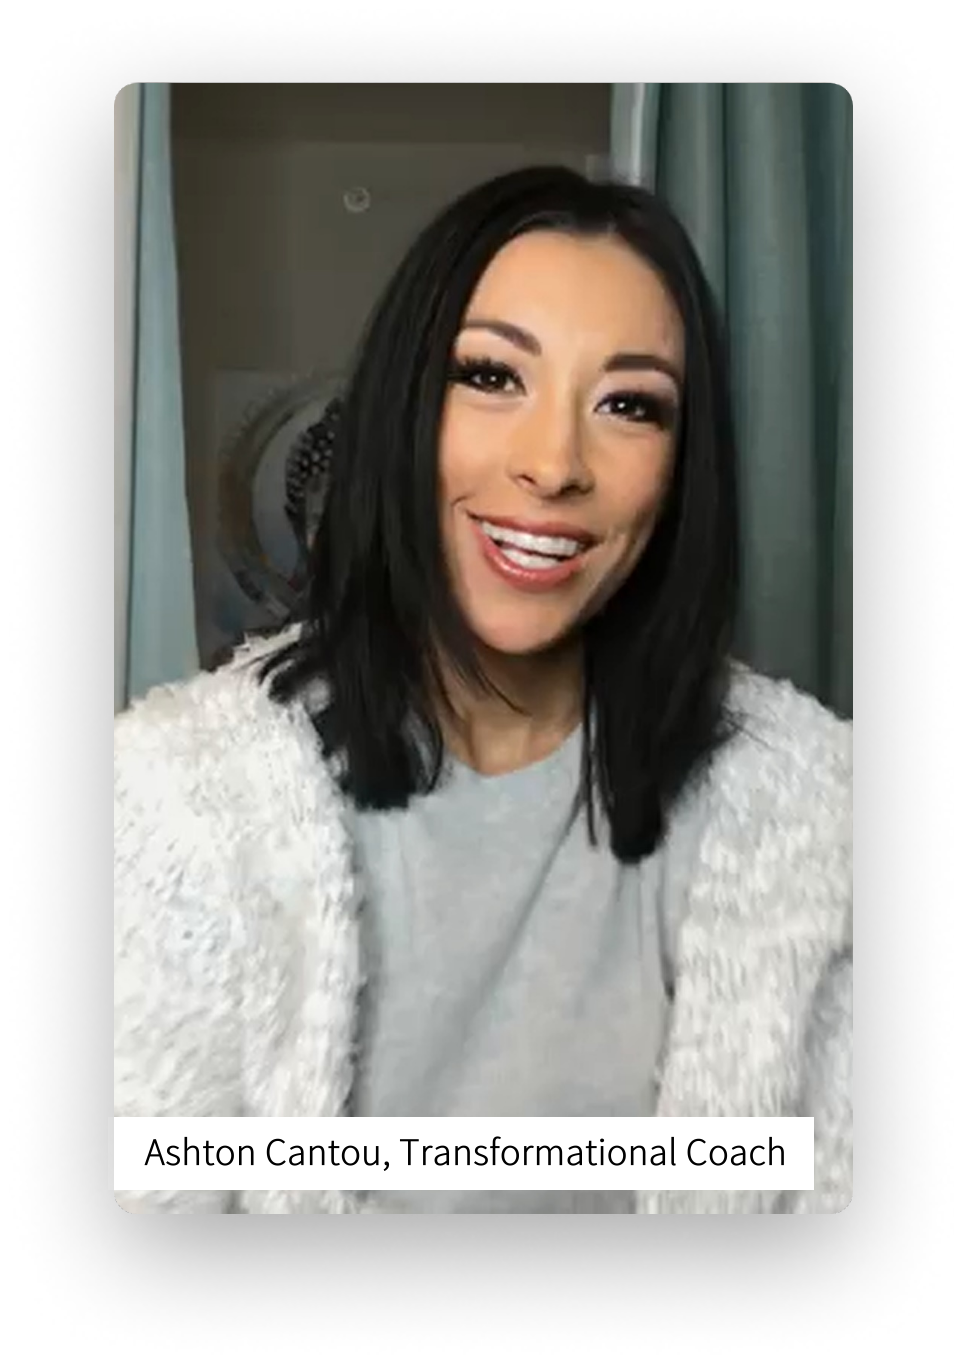 Screenshot of Ashton Cantou, Transformational Coach leaving a video review for Relax with Adam Meditation Classes.